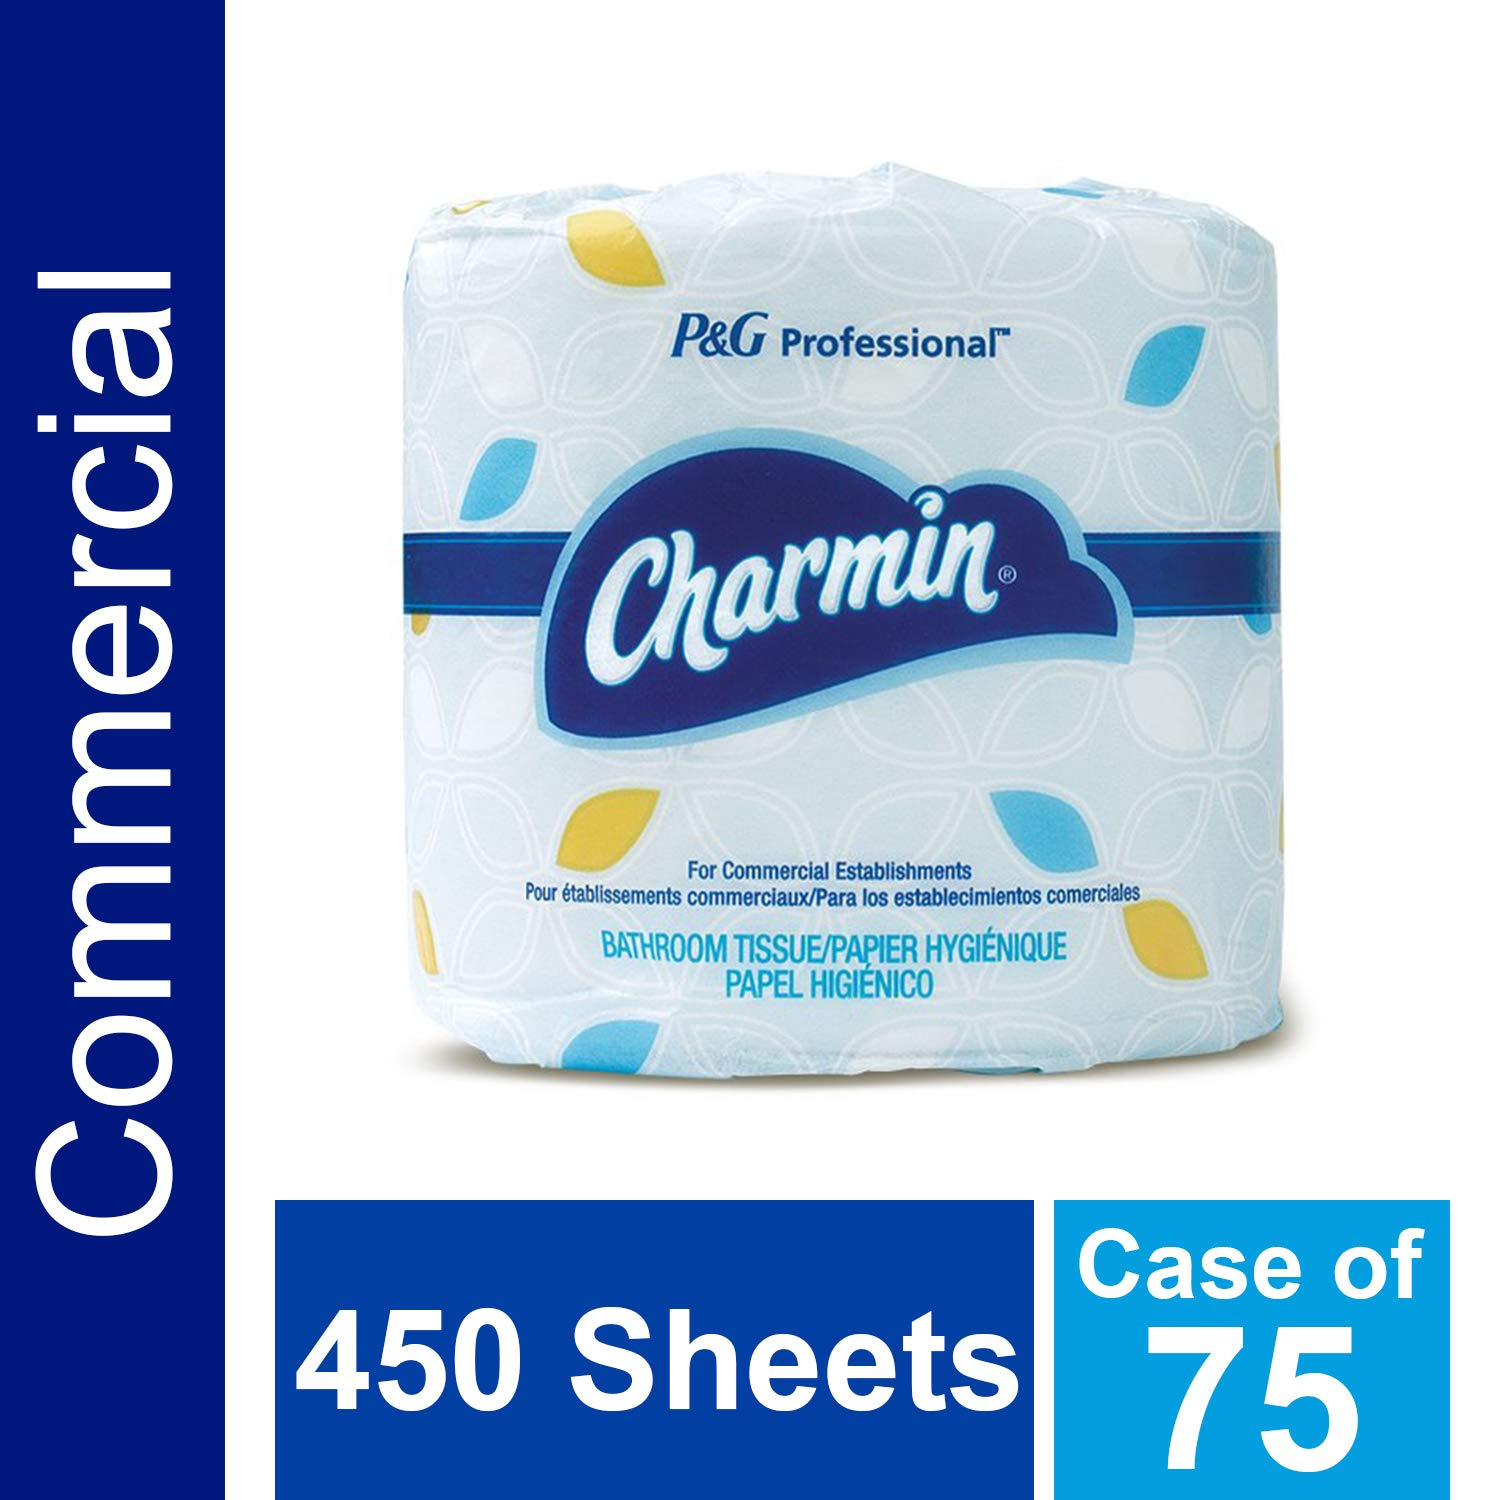 Bulk Toilet Paper for Businesses by Charmin Professional, Individually Wrapped for Commercial Use, 2-ply Standard Roll with 450 Sheets/Roll (Case of 75) by P&G Professional